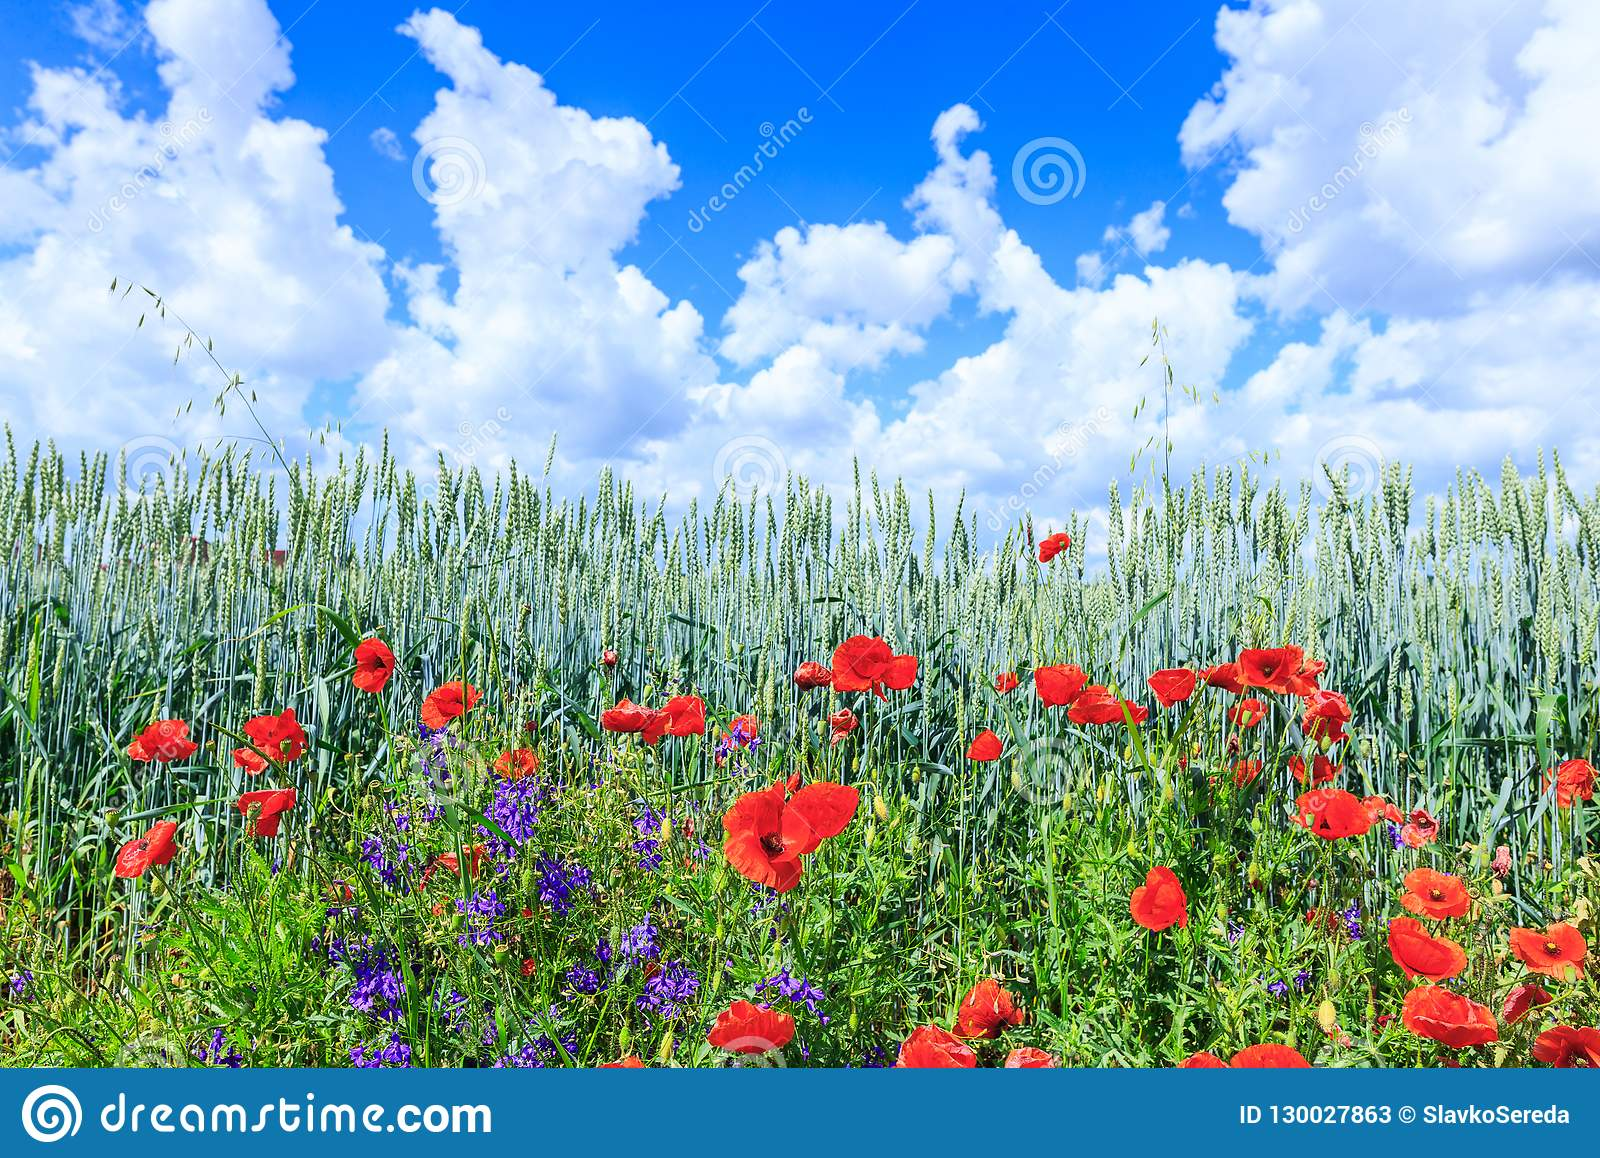 Green wheat in the field. Blue sky with cumulus clouds. Magic summertime landscape. The flowers of the June poppies around